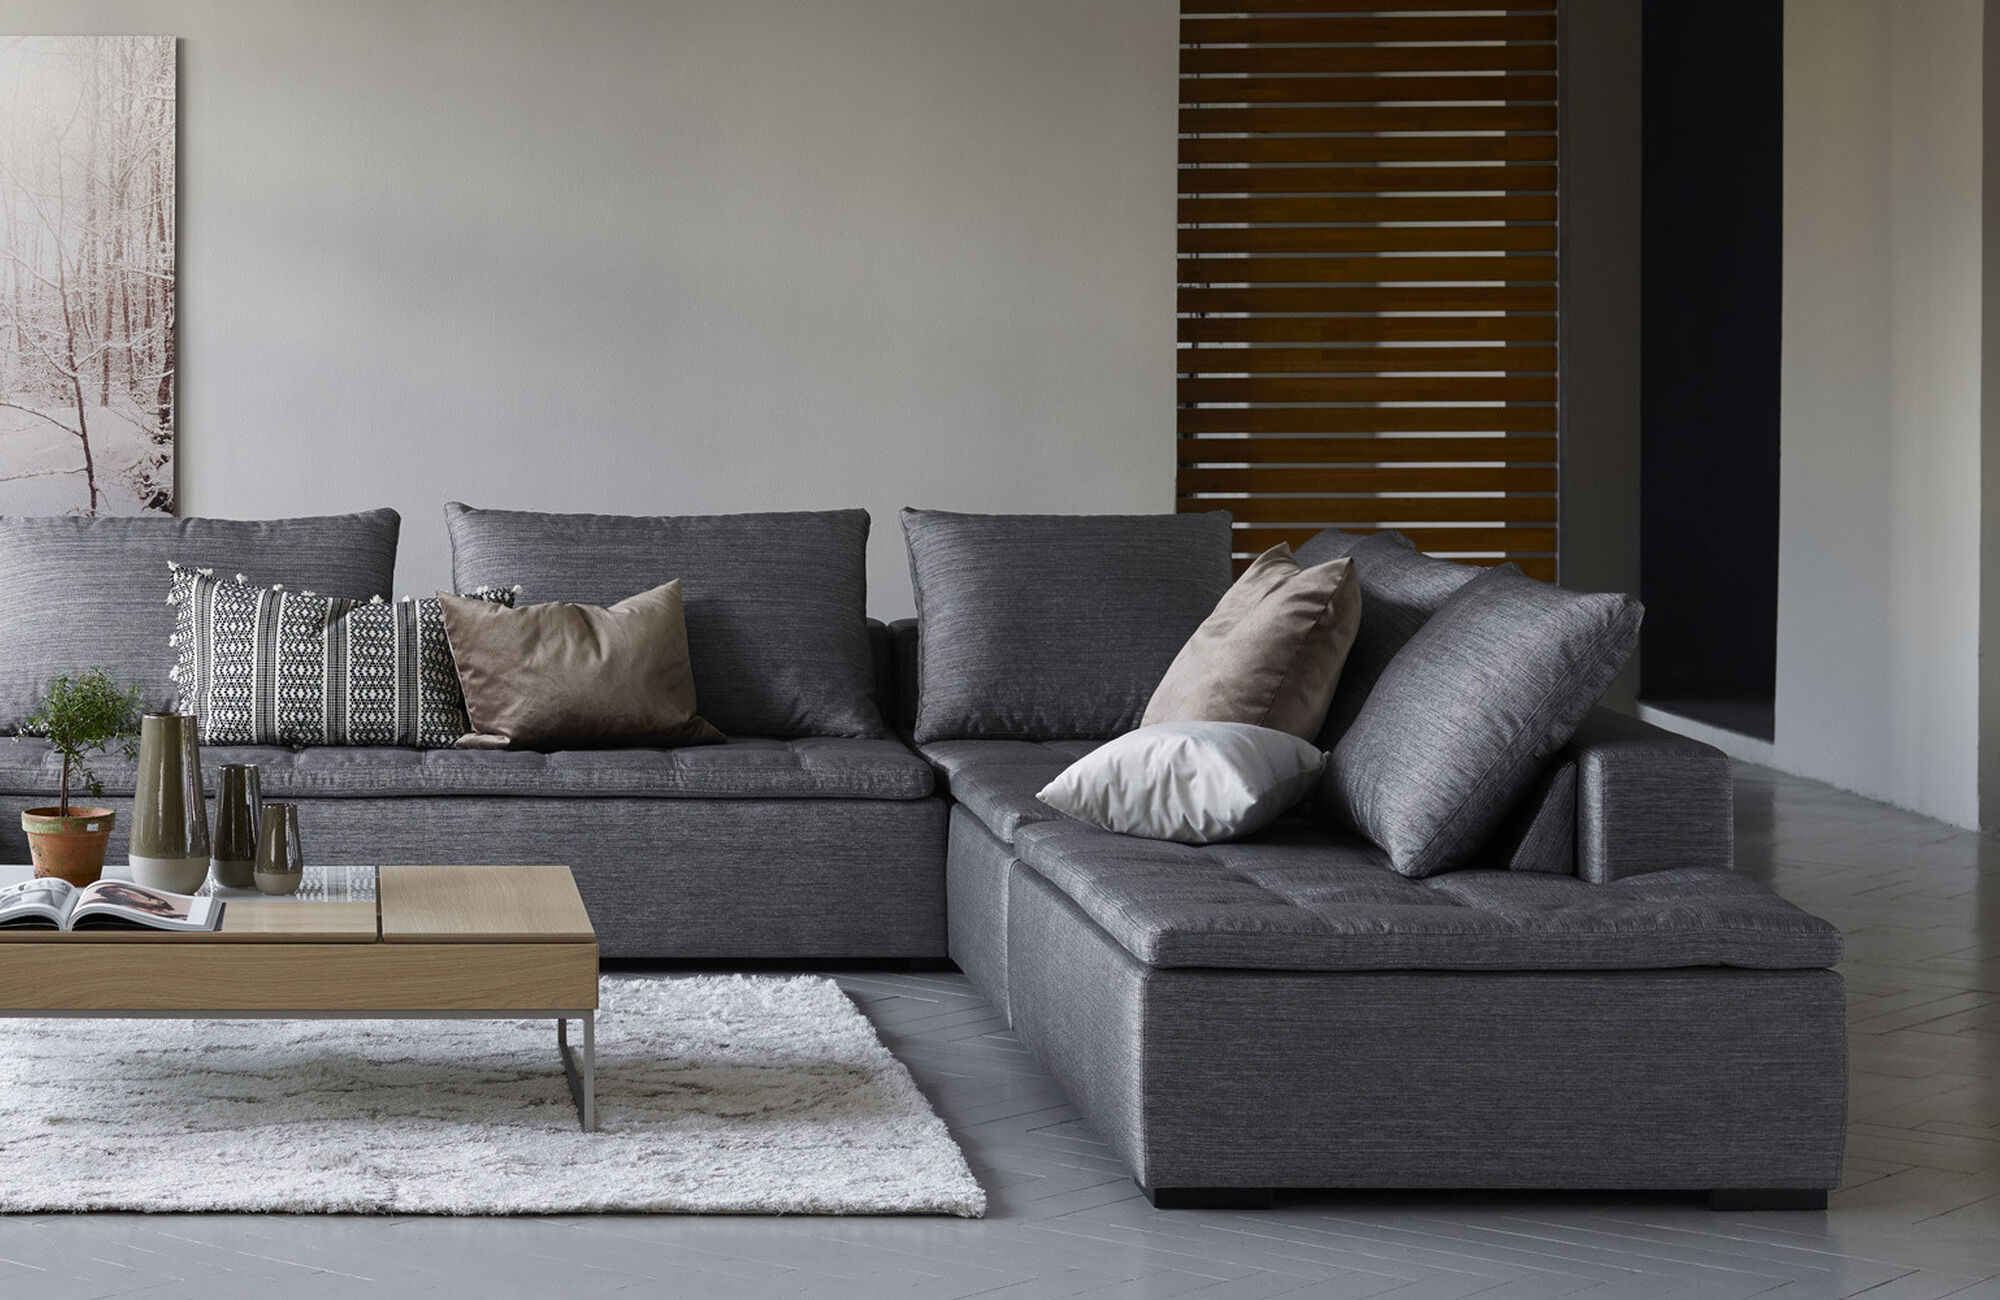 Chaise longue sofas - Mezzo sofa with resting unit